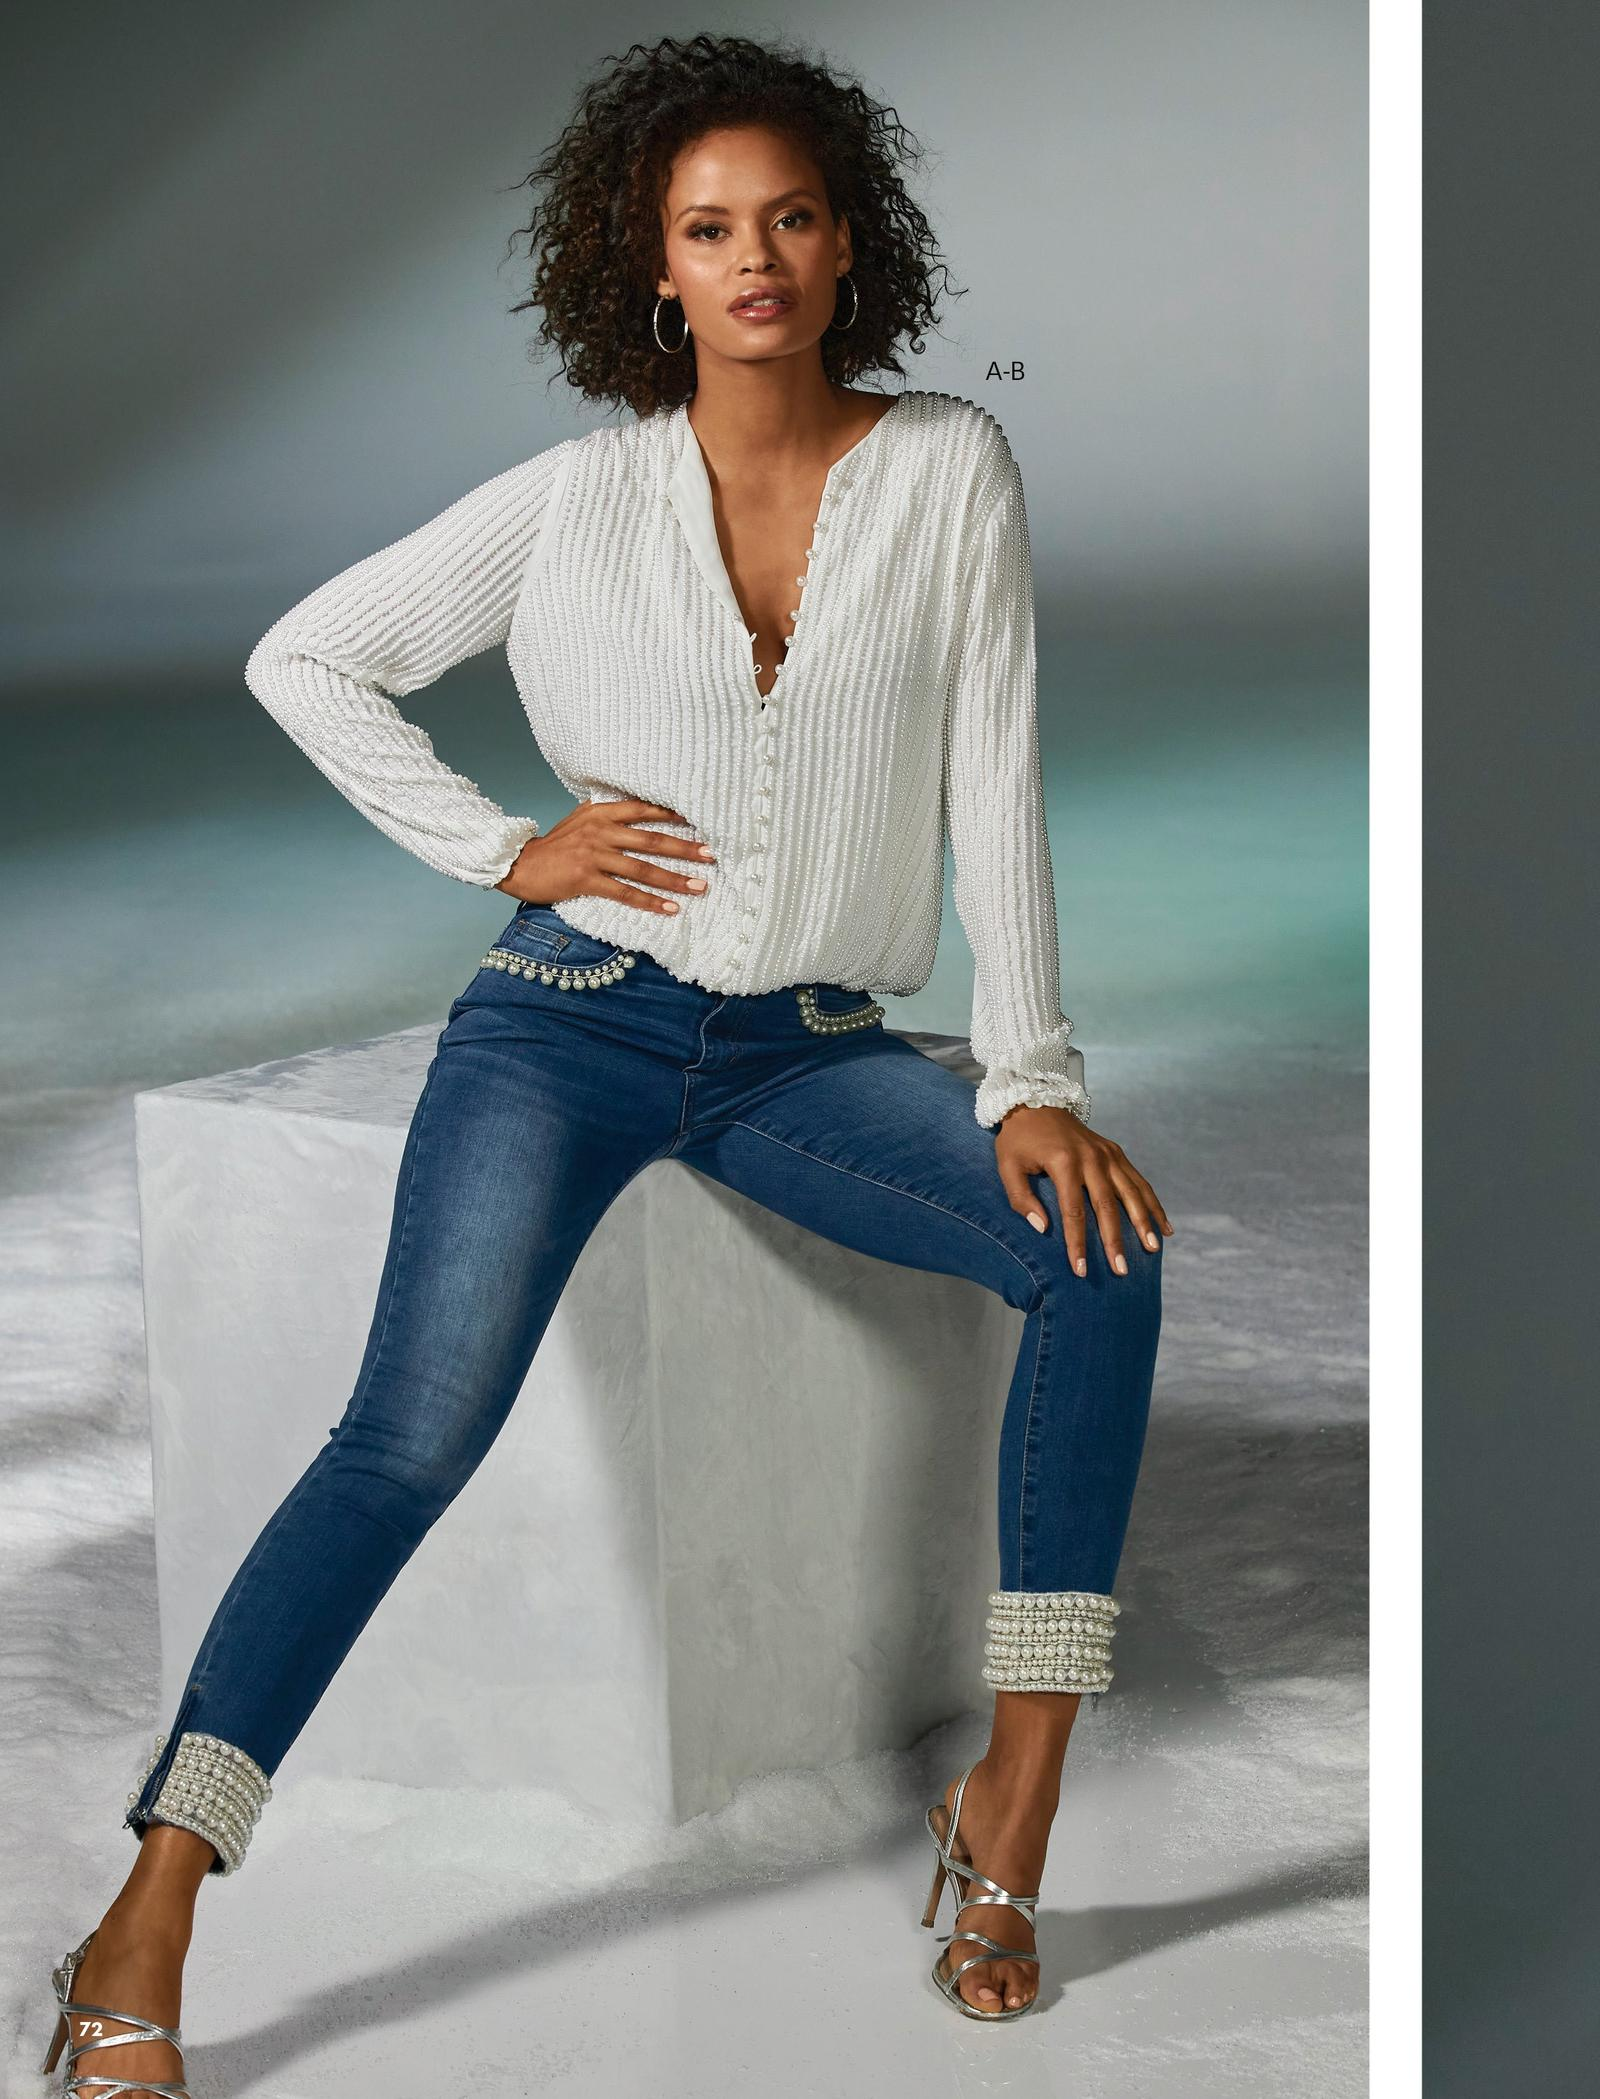 model wearing a white pearl embellished long-sleeve blouse, pearl embellished jeans, silver strappy heels, and silver hoop earrings.